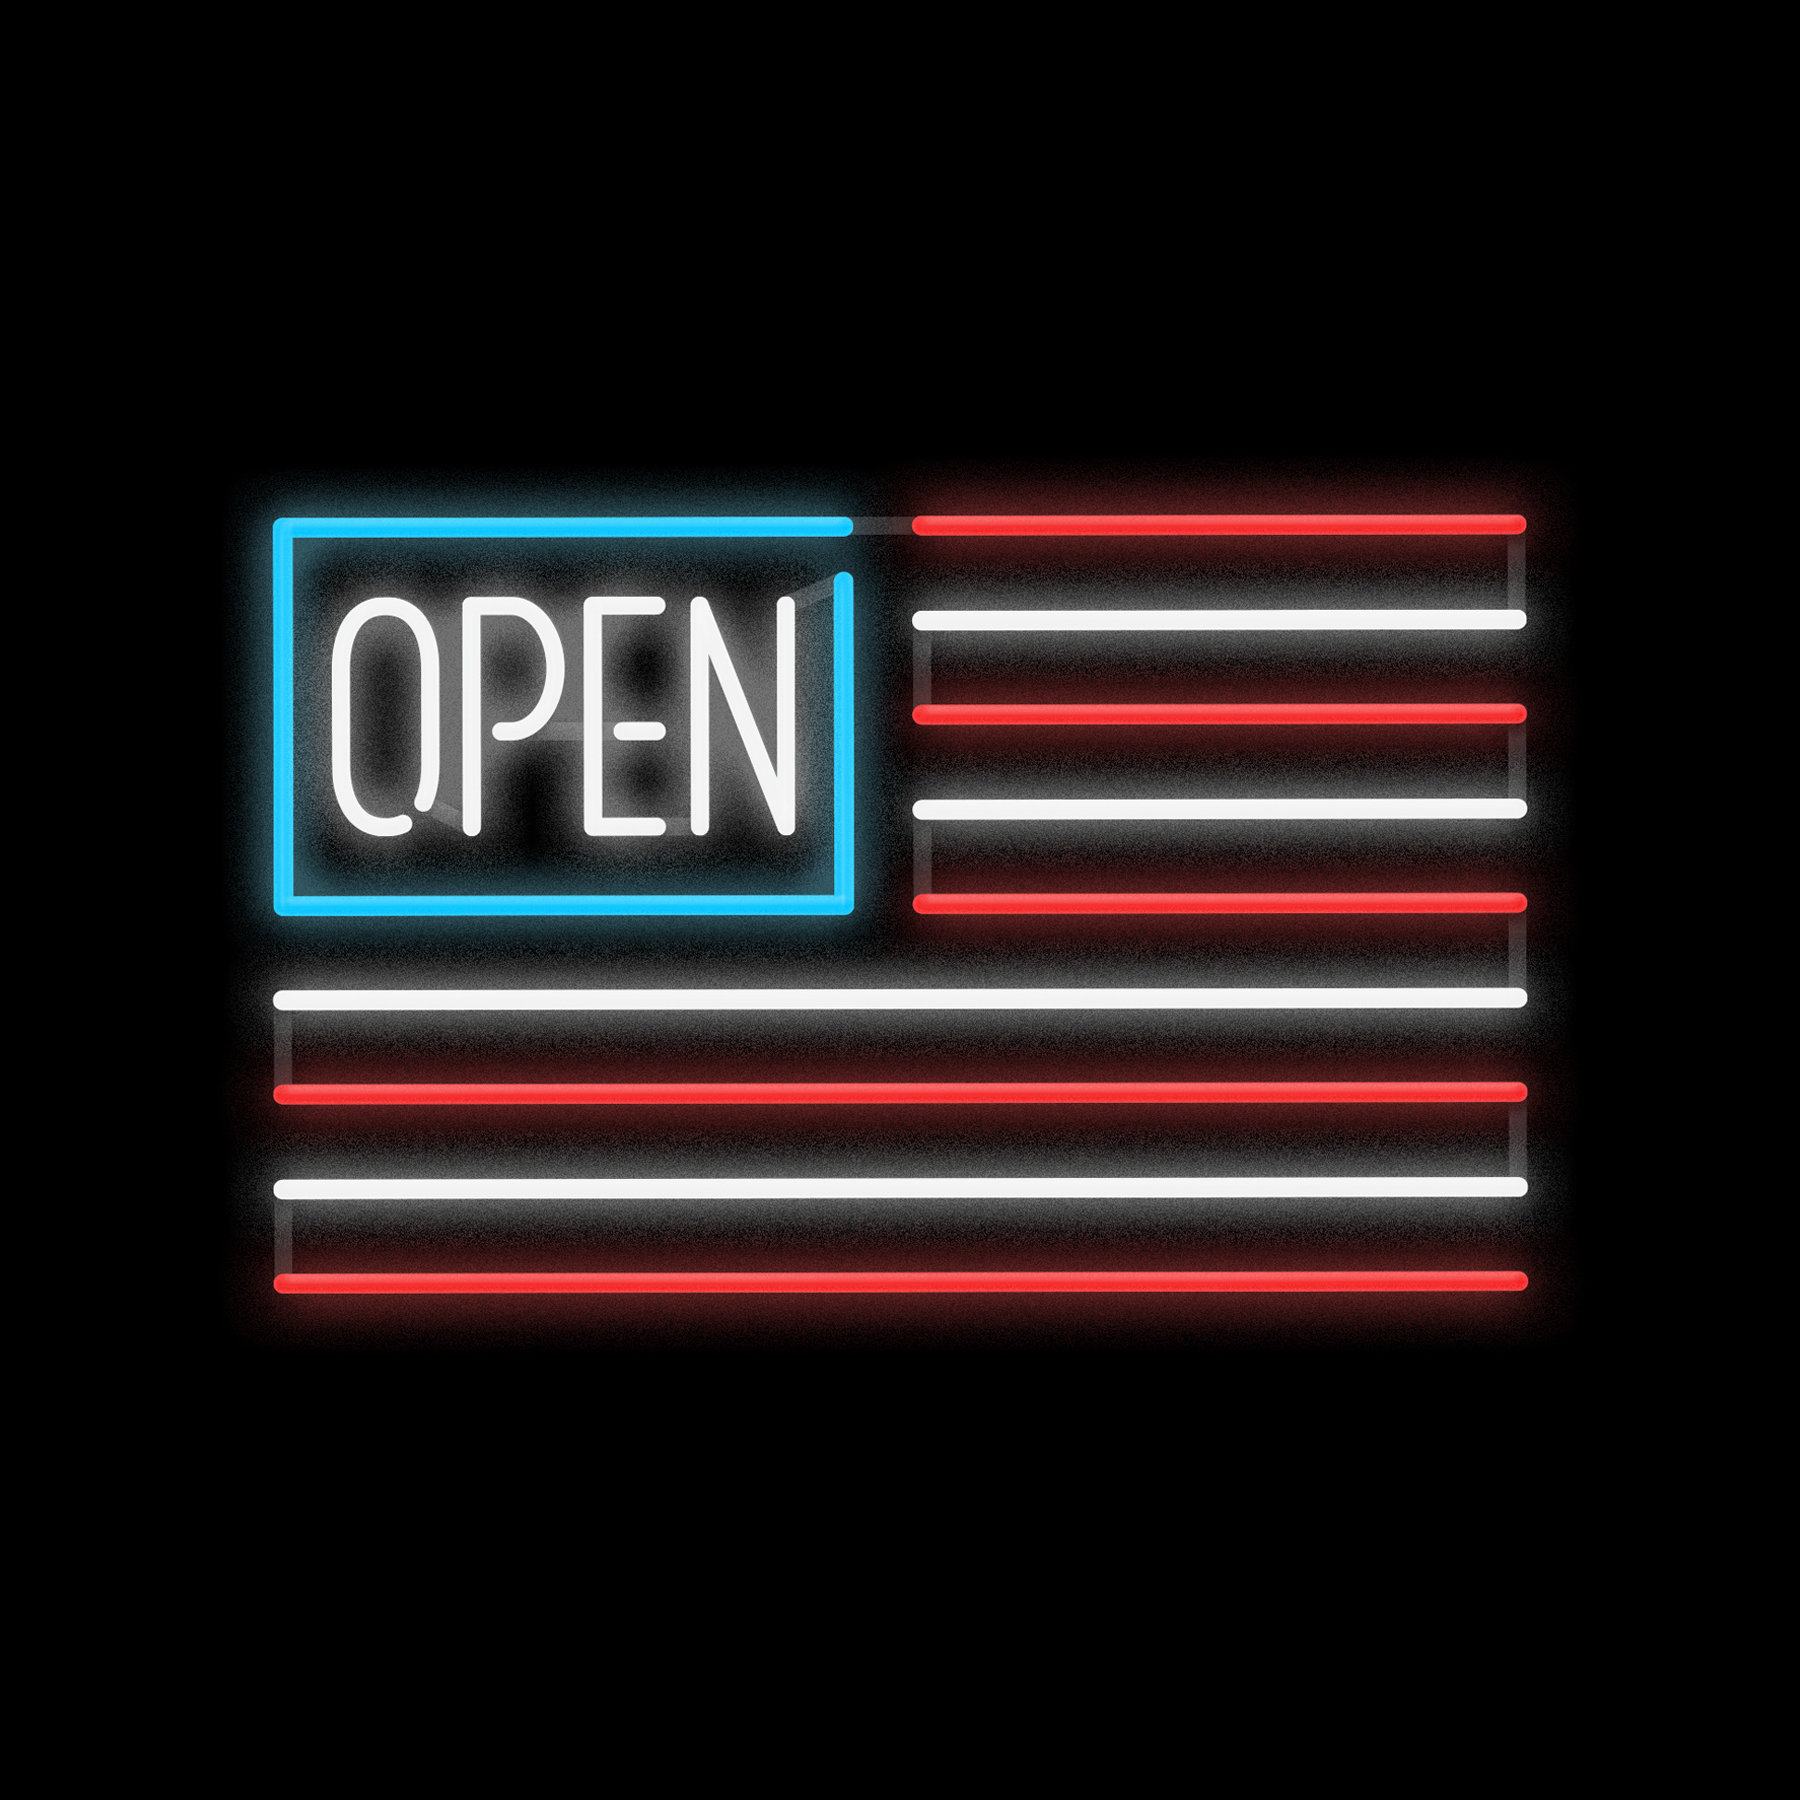 reopening-america-crimeshop